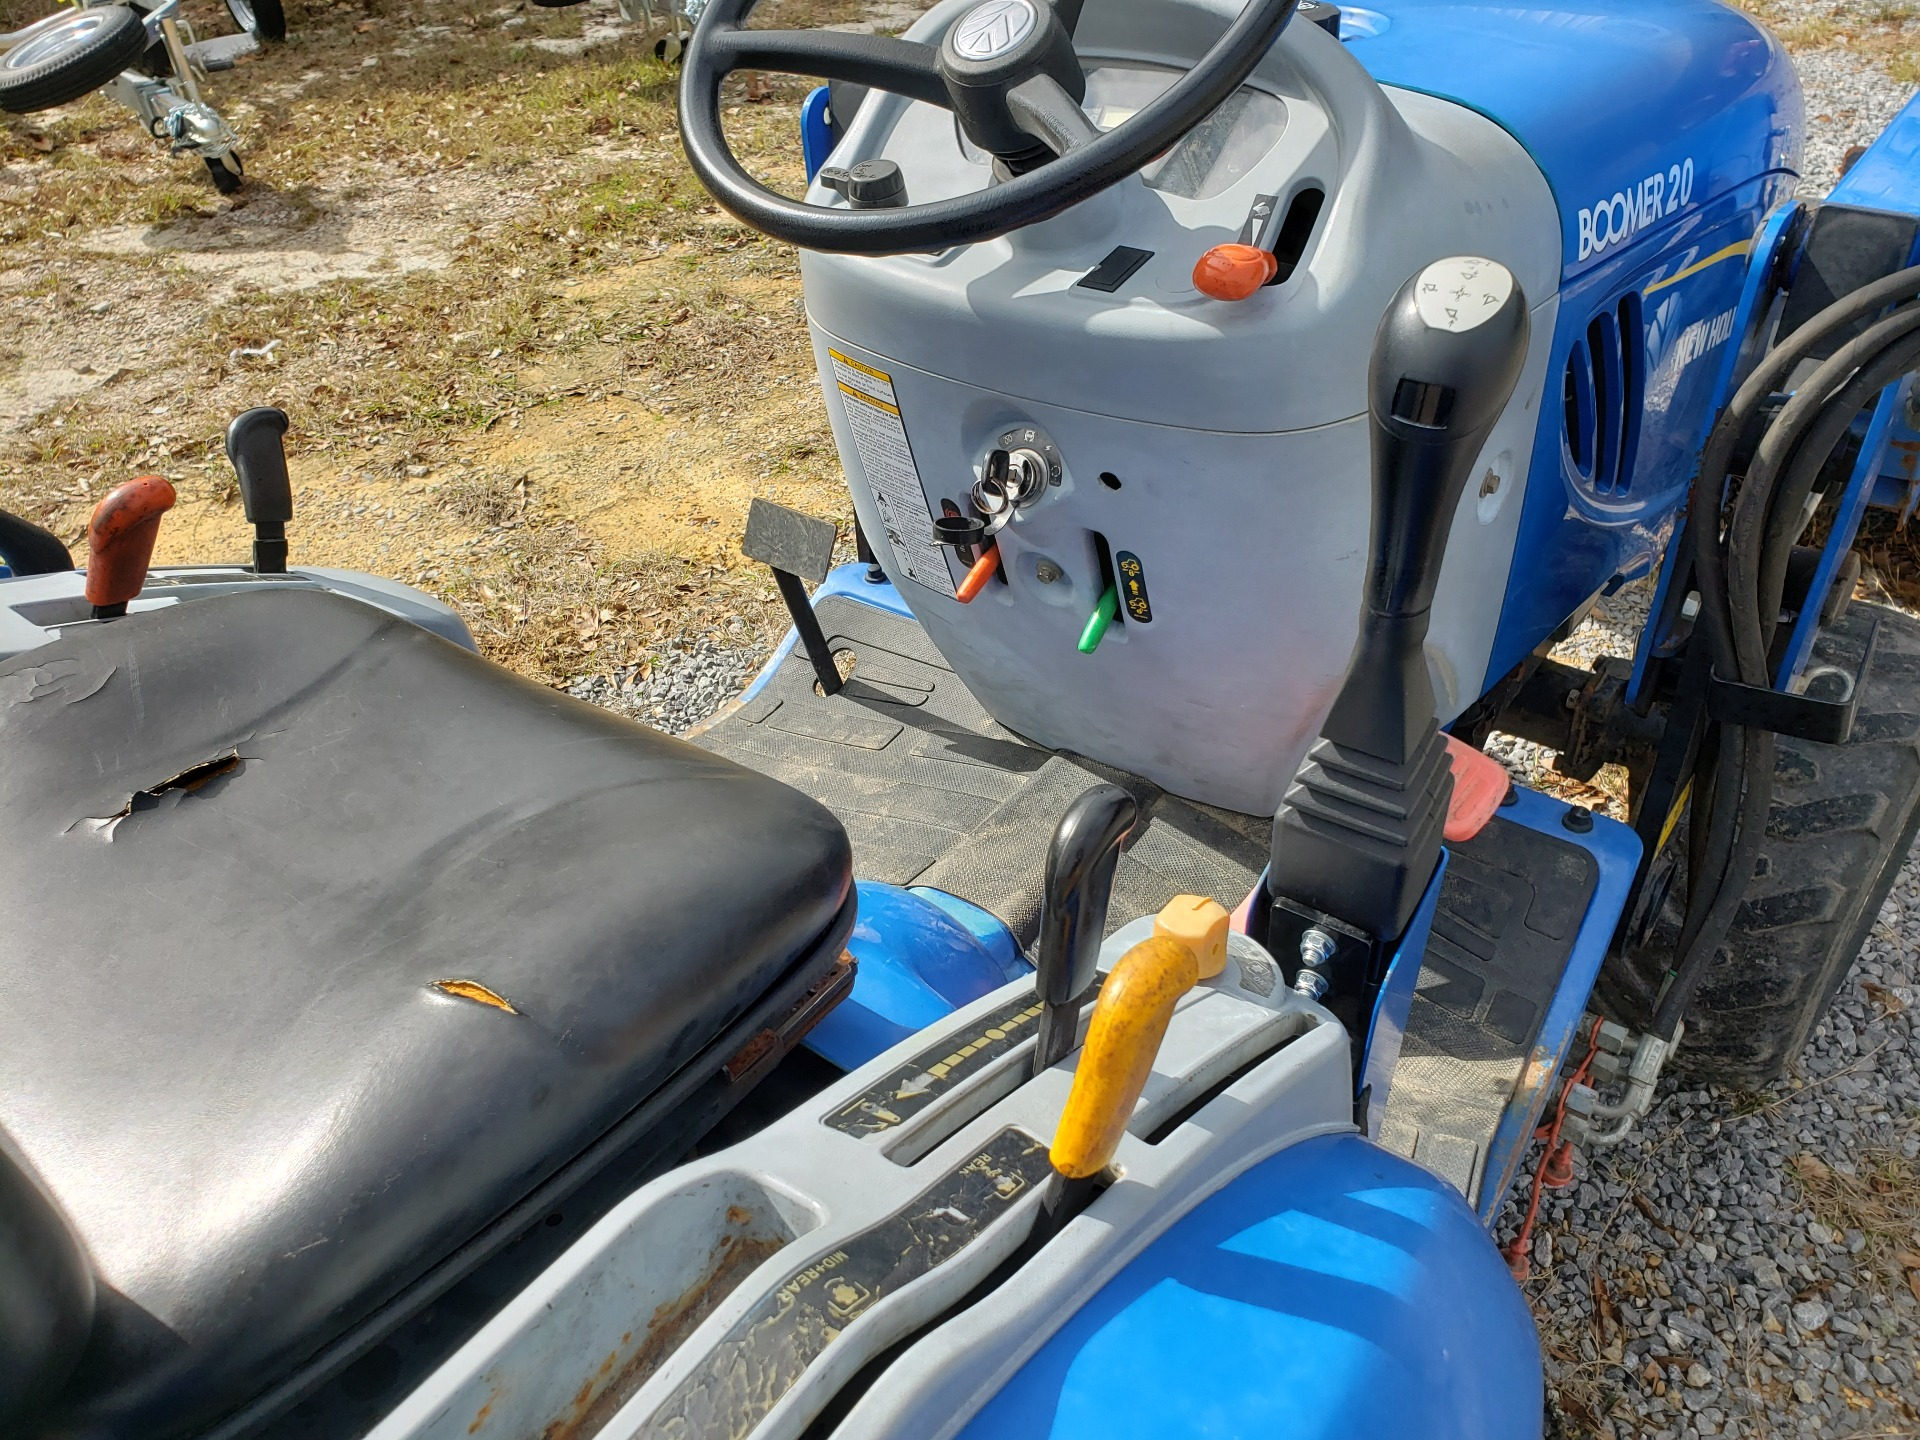 2012 New Holland Agriculture Boomer Compact 20 in Saucier, Mississippi - Photo 6